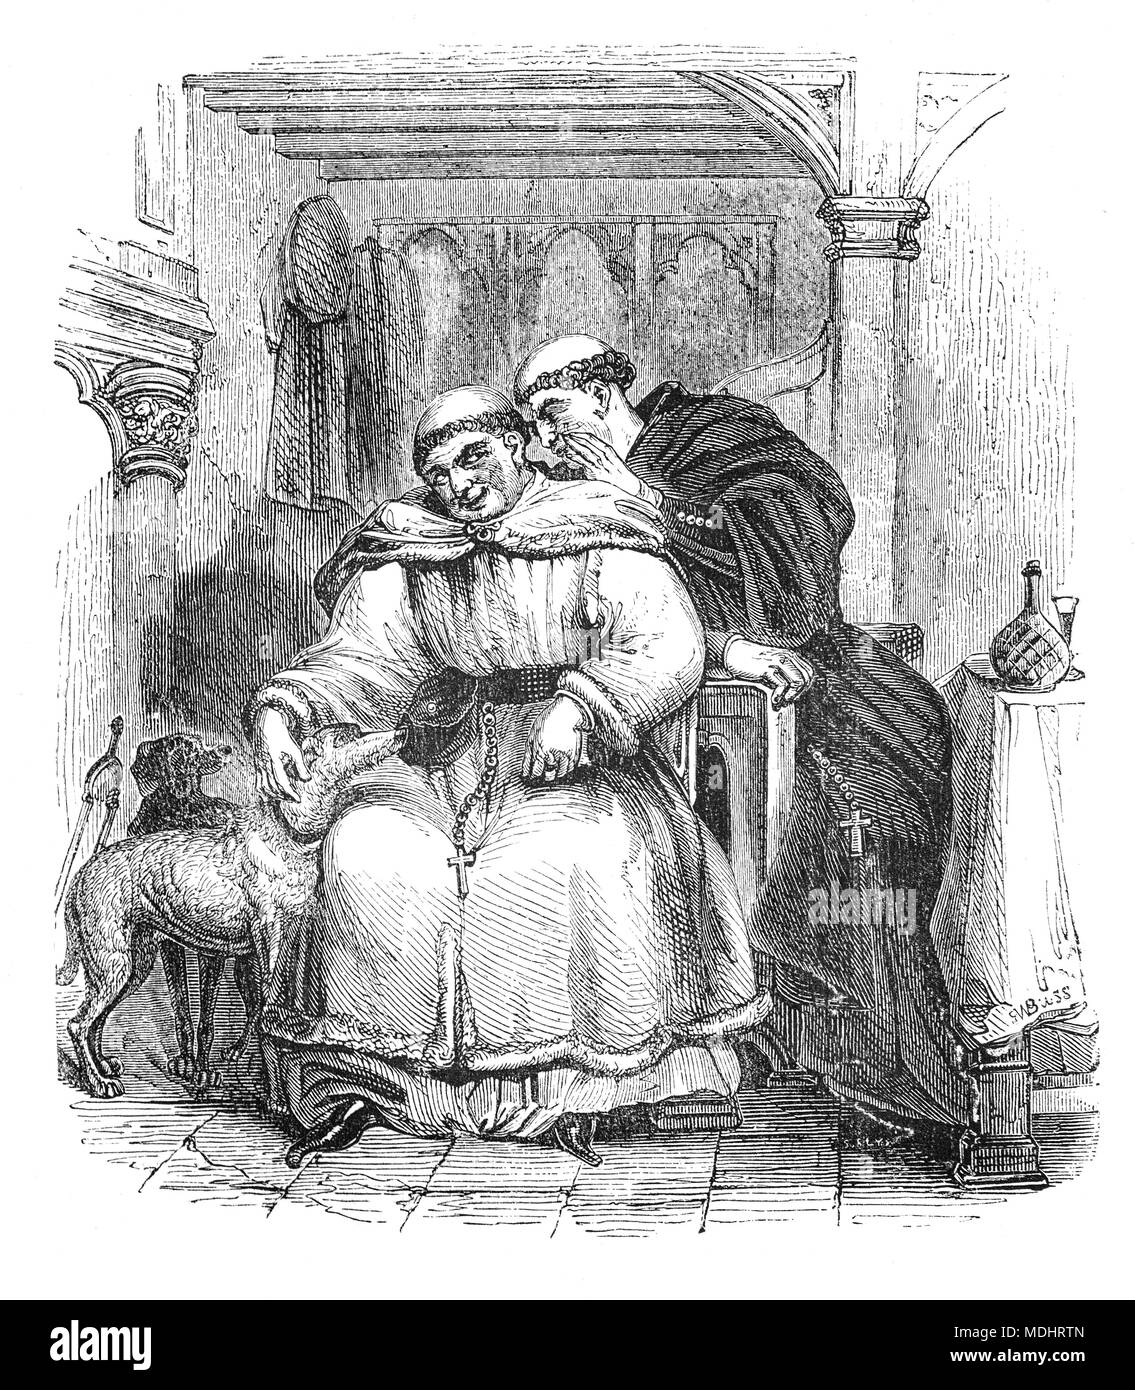 Two of the characters from The Canterbury Tales, a collection of 24 stories written  by Geoffrey Chaucer between 1387 and 1400 when he became Controller of Customs and Justice of Peace.  The tales (mostly written in verse, although some are in prose) are presented as part of a story-telling contest by a group of pilgrims as they travel together on a journey from London to Canterbury to visit the shrine of Saint Thomas Becket at Canterbury Cathedral. The illustration shows the Monk and the Friar. - Stock Image